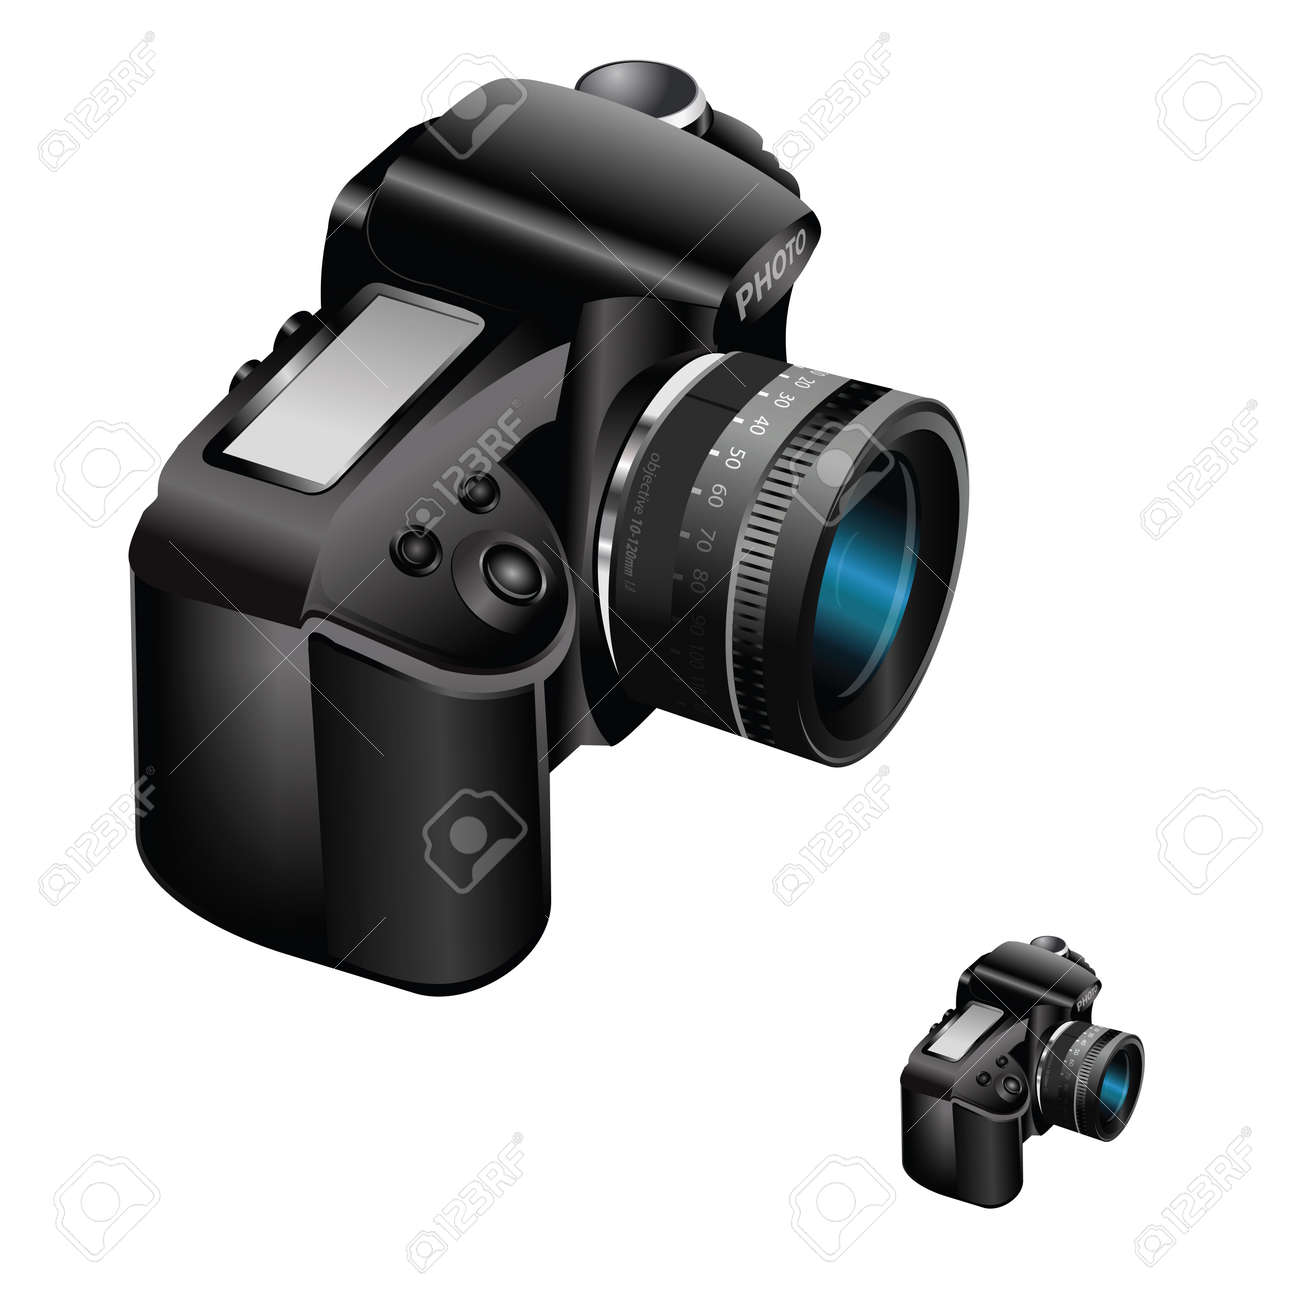 Vector realistic illustrated digital camera with zoom lens on white background Stock Vector - 18339963